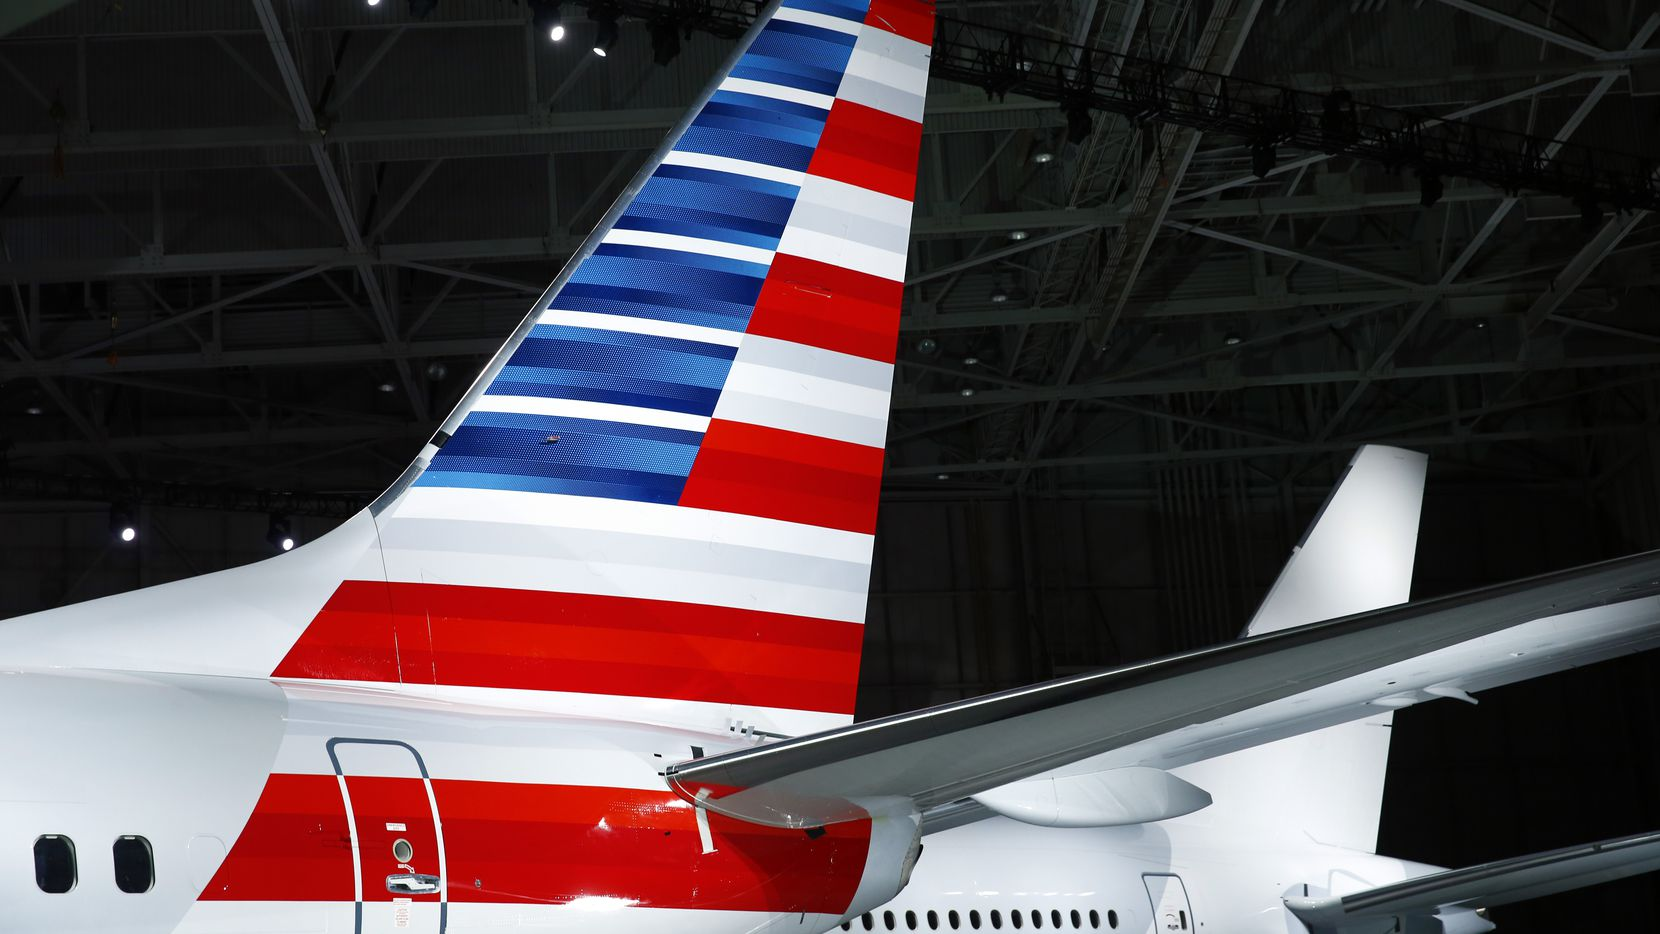 Fort Worth-based American Airlines was carrying an industry-leading $41 billion in debt.